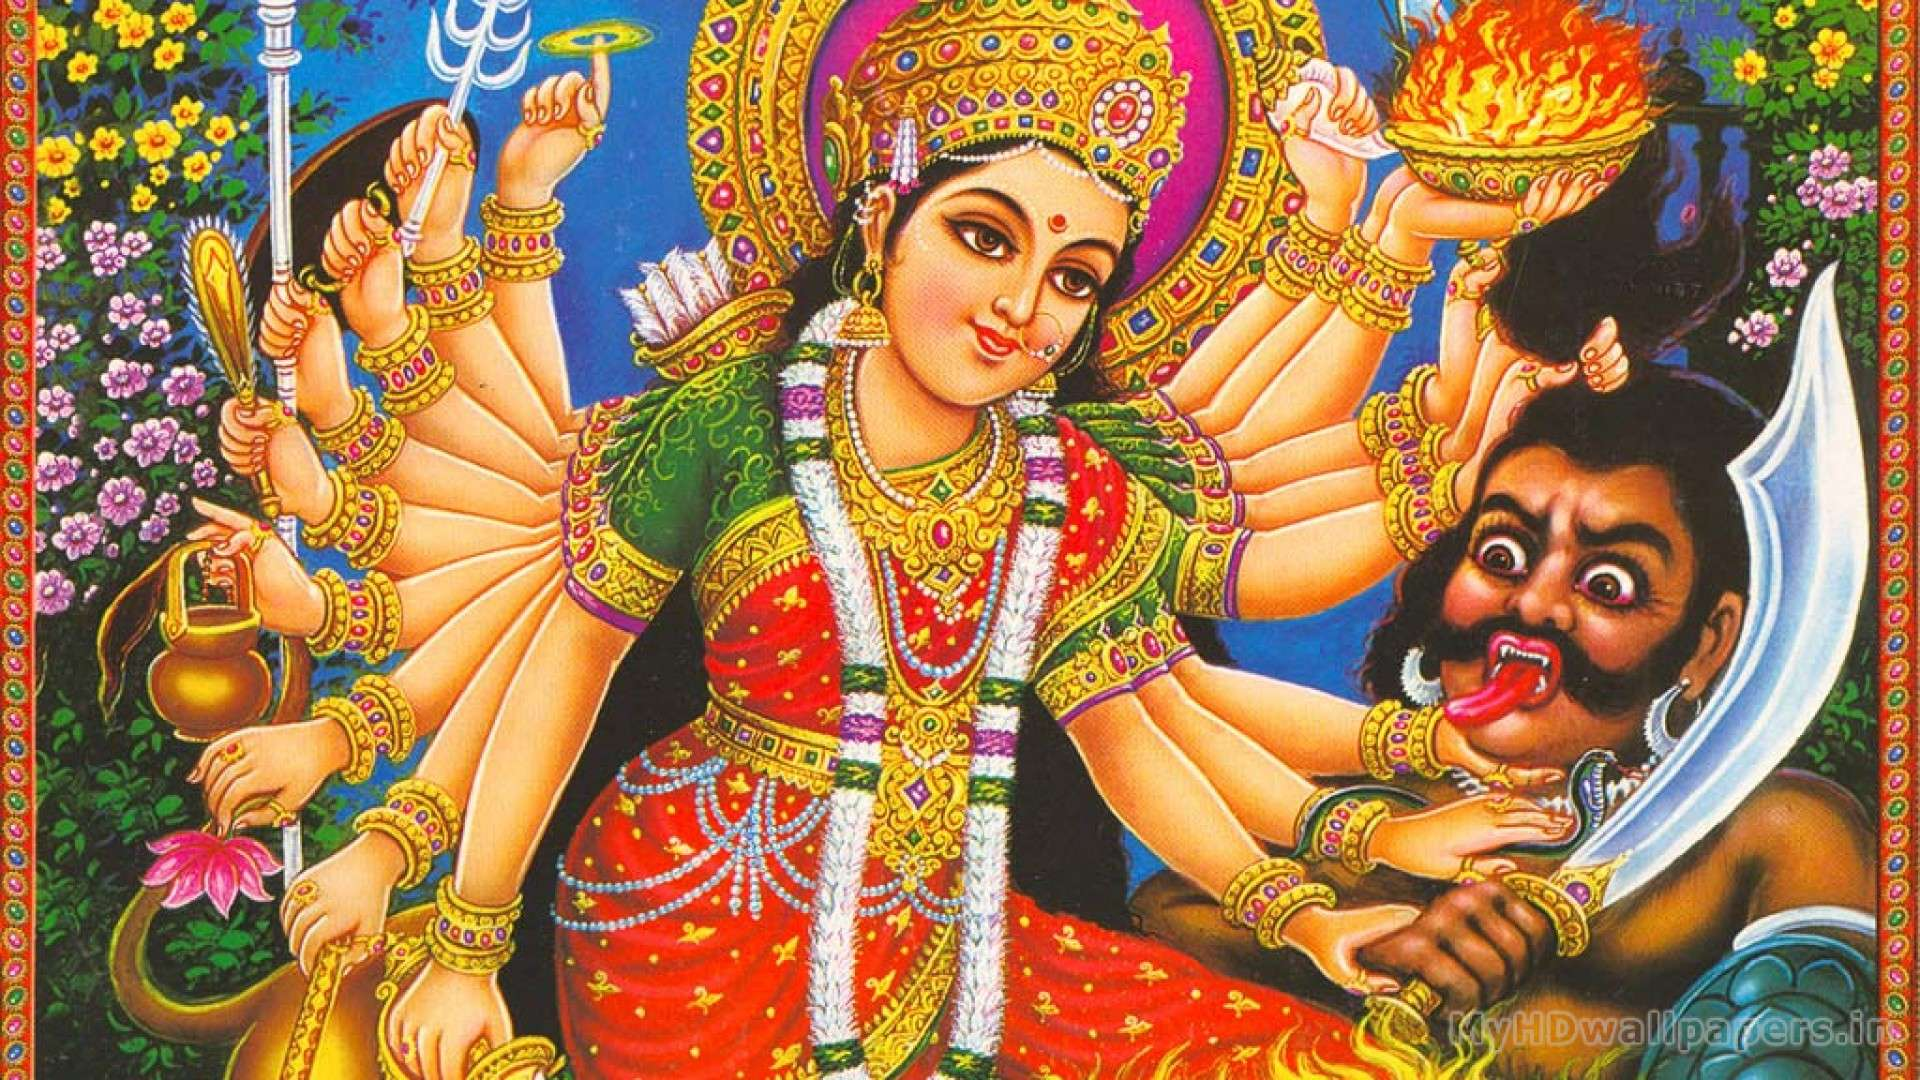 Hd Durga Maa Wallpapers Wallpapersafari